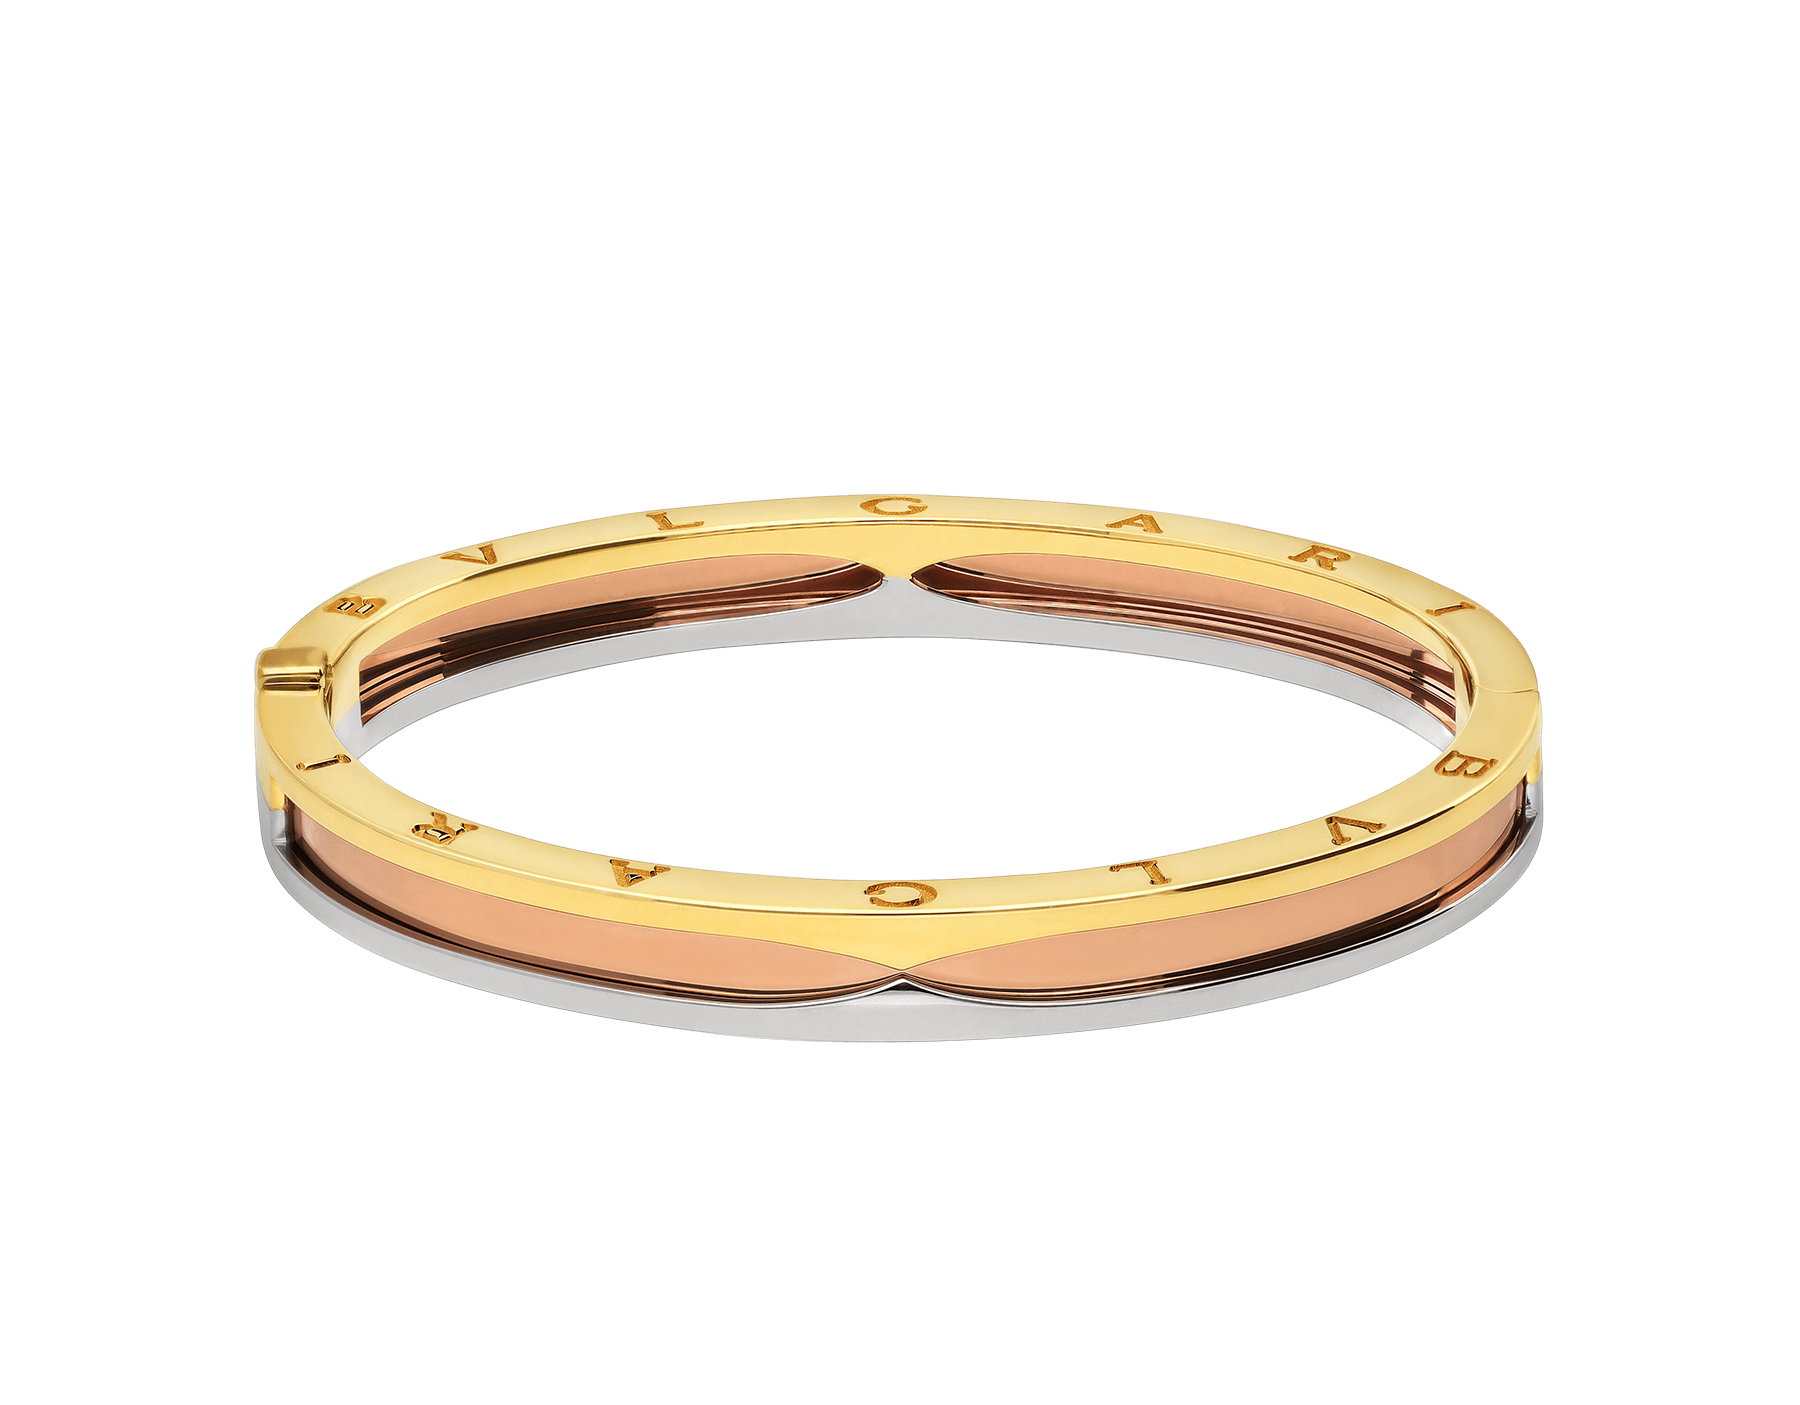 B.zero1 1bangle bracelet in 18 kt rose, yellow and white gold. BR857847 image 2